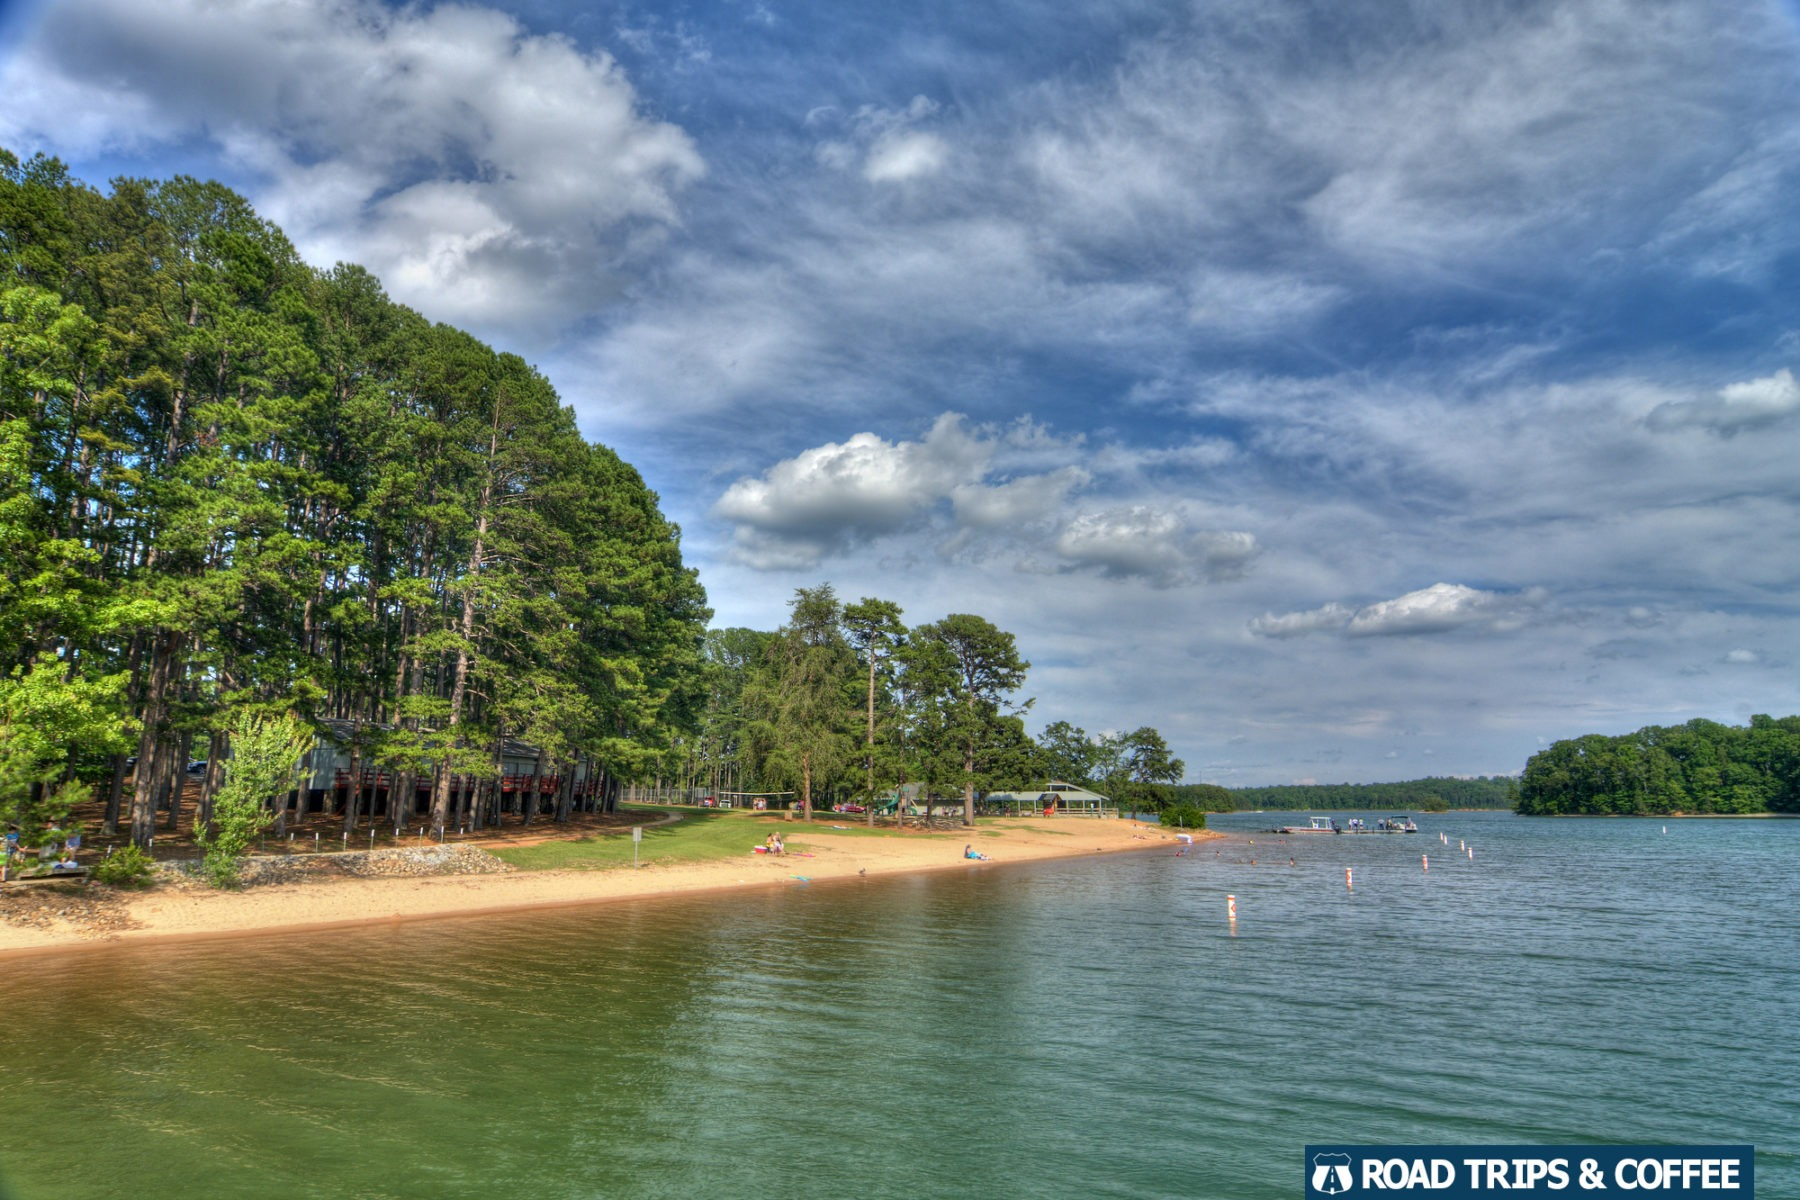 A long sandy beach surrounded by towering green trees and calm water at a county park in South Carolina.